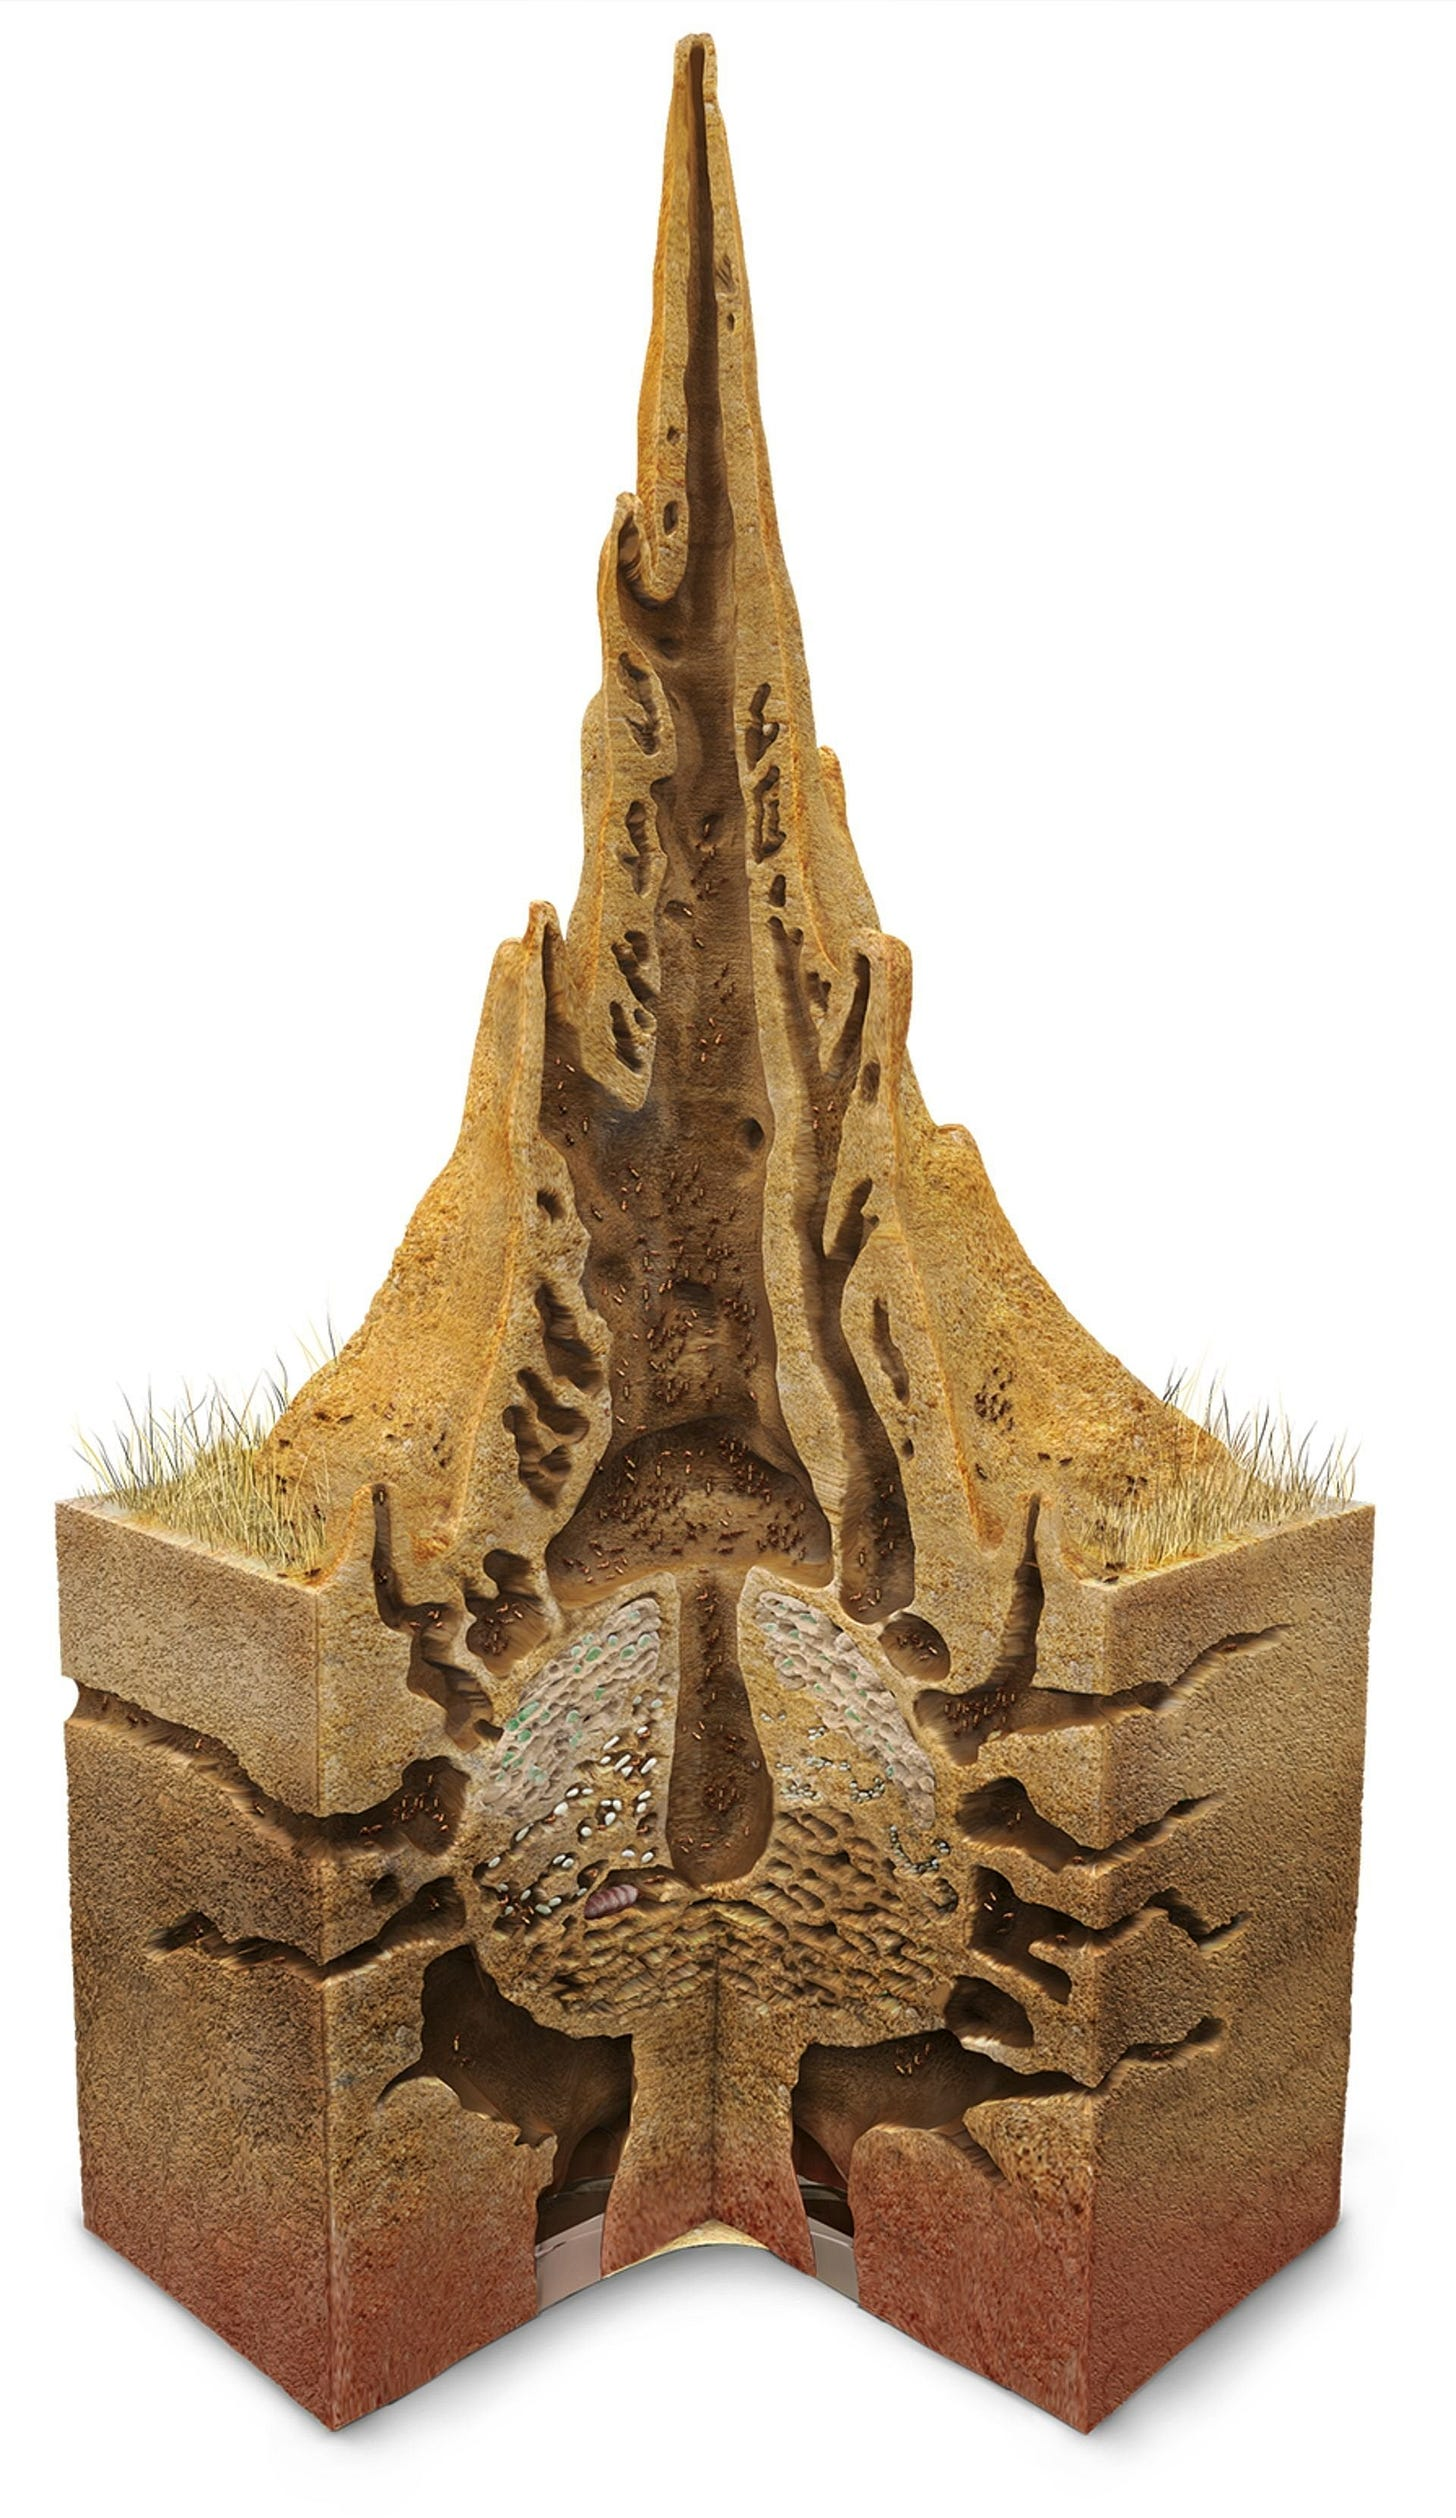 termite mound cross-section image